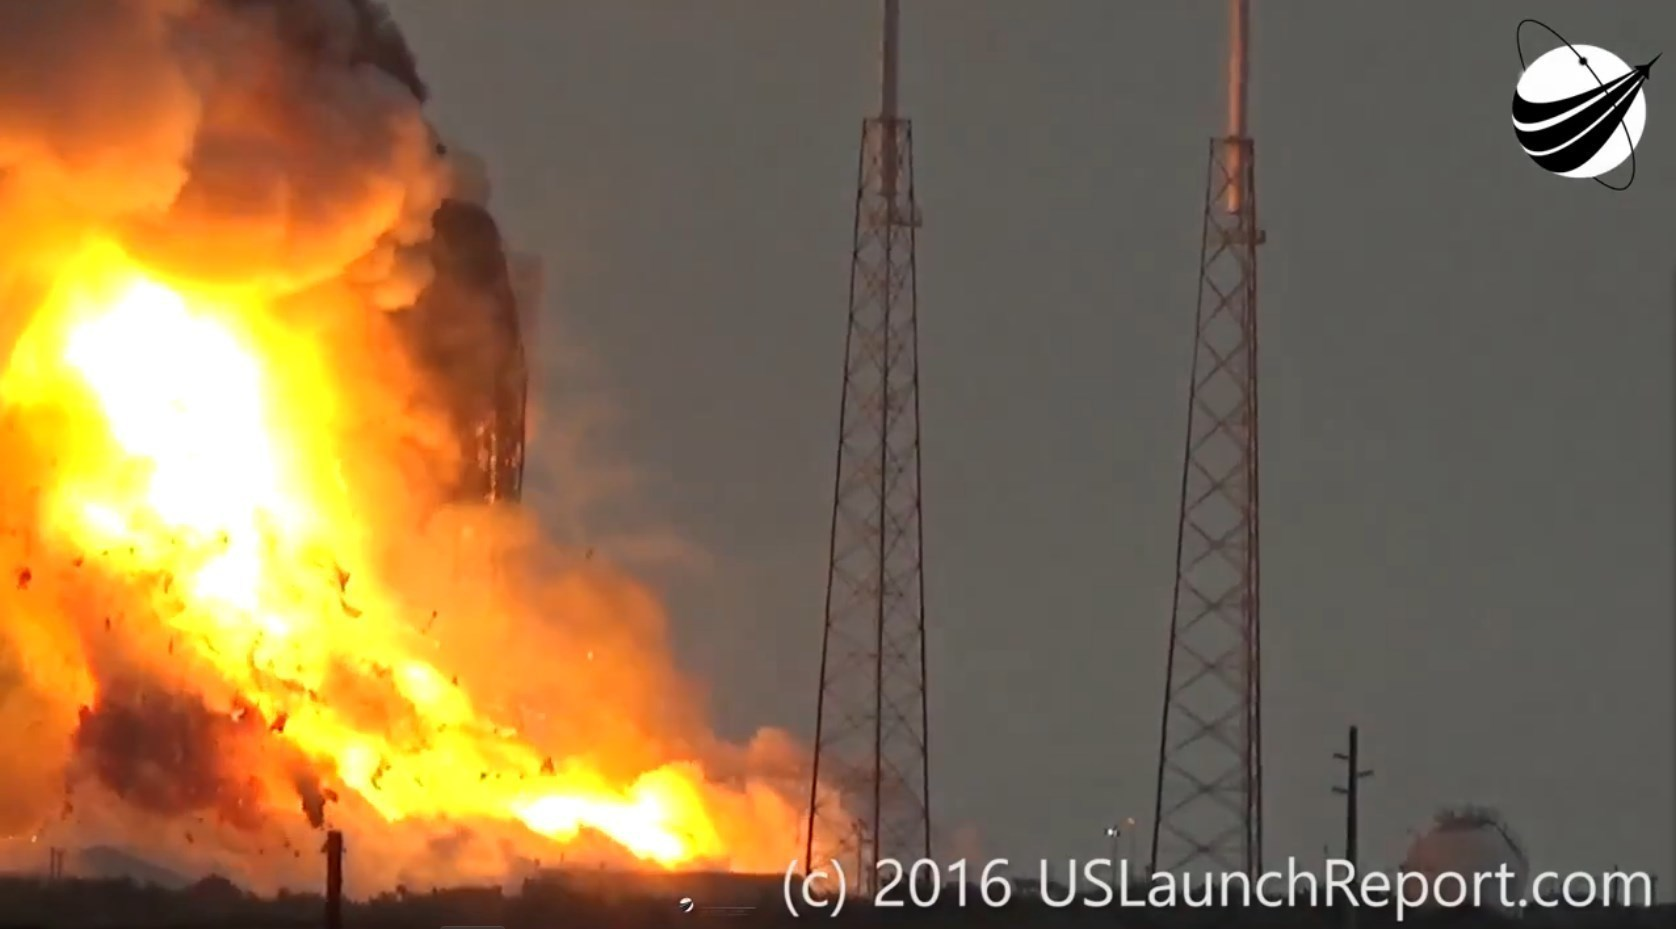 SpaceX now hopes to return to flight in January, not this month